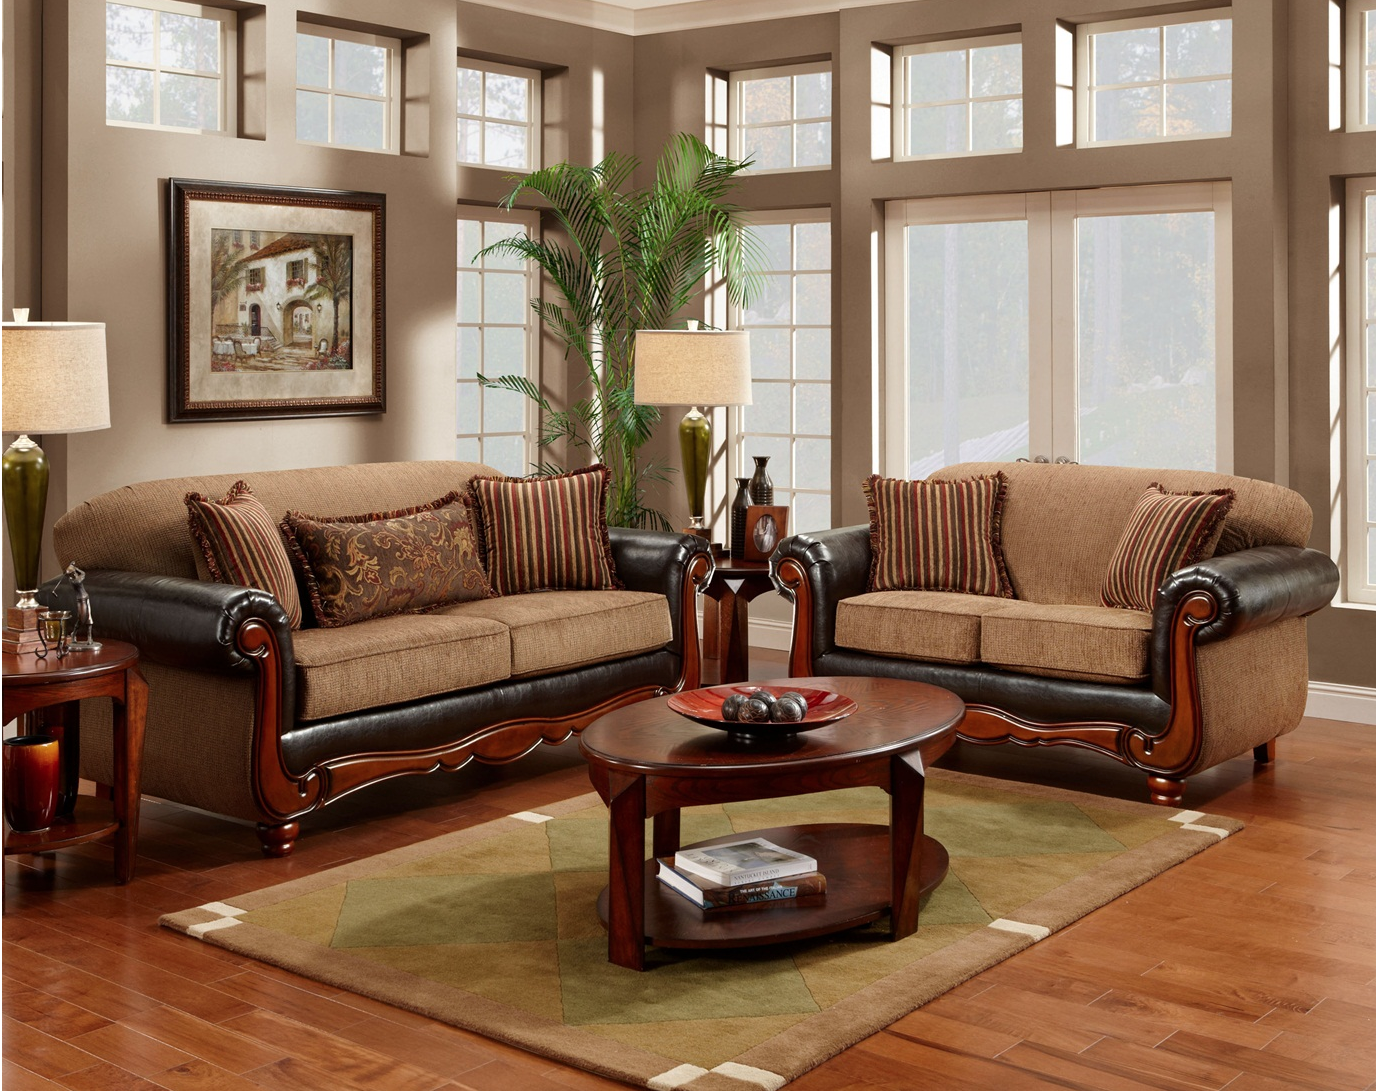 Your living room is the room that you will invest most of your time relaxing in